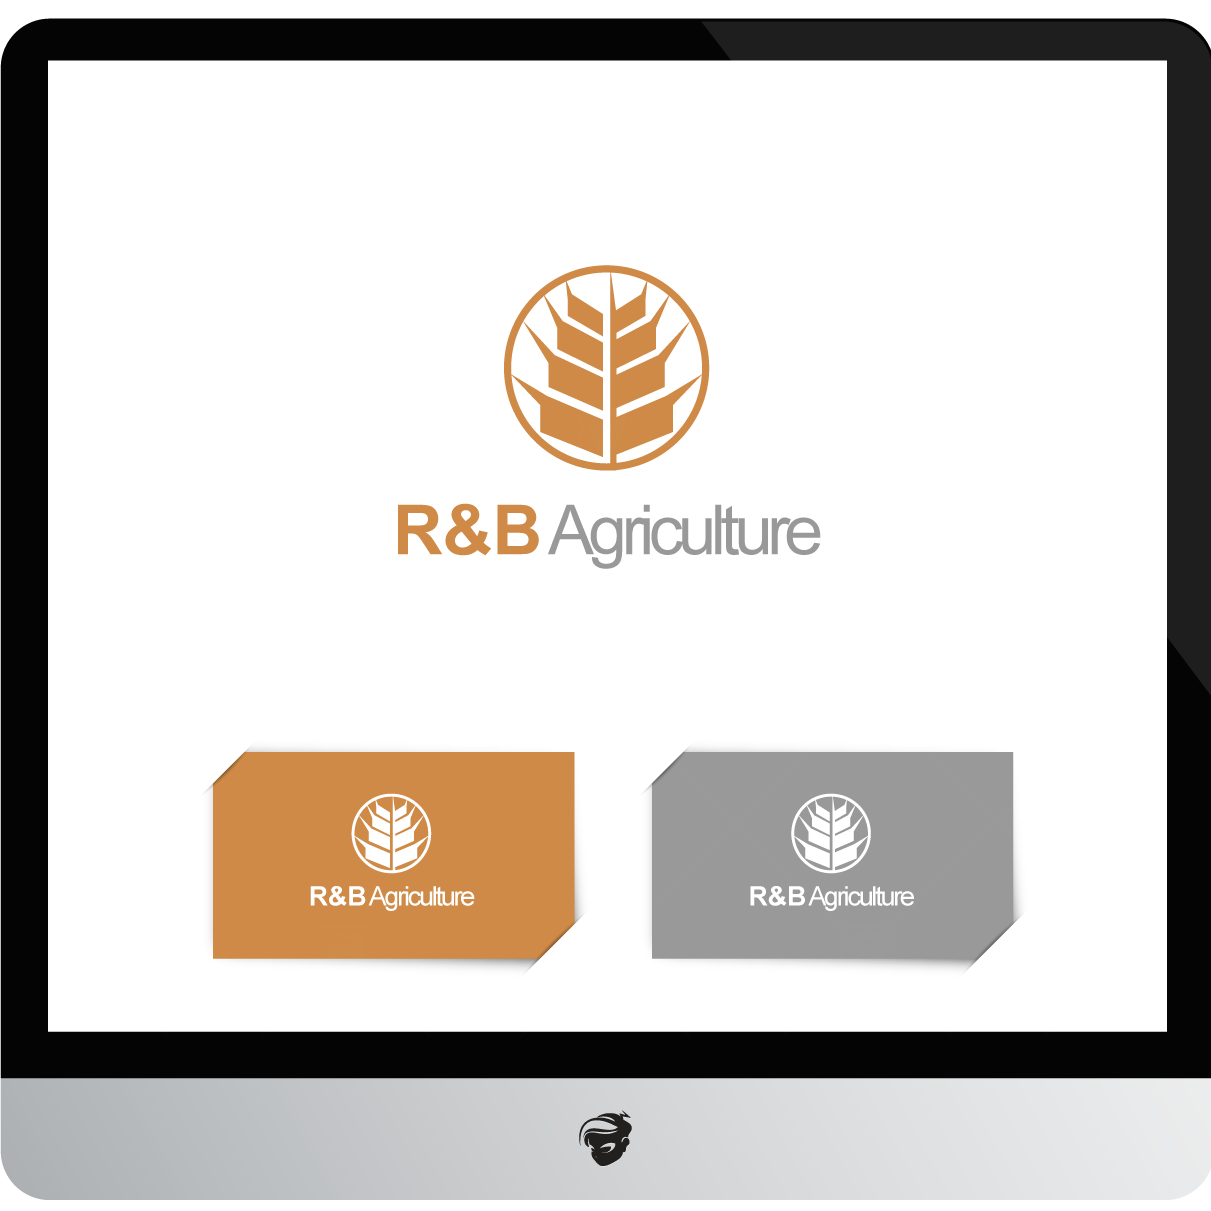 Logo Design by zesthar - Entry No. 144 in the Logo Design Contest Captivating Logo Design for R & B Agriculture.